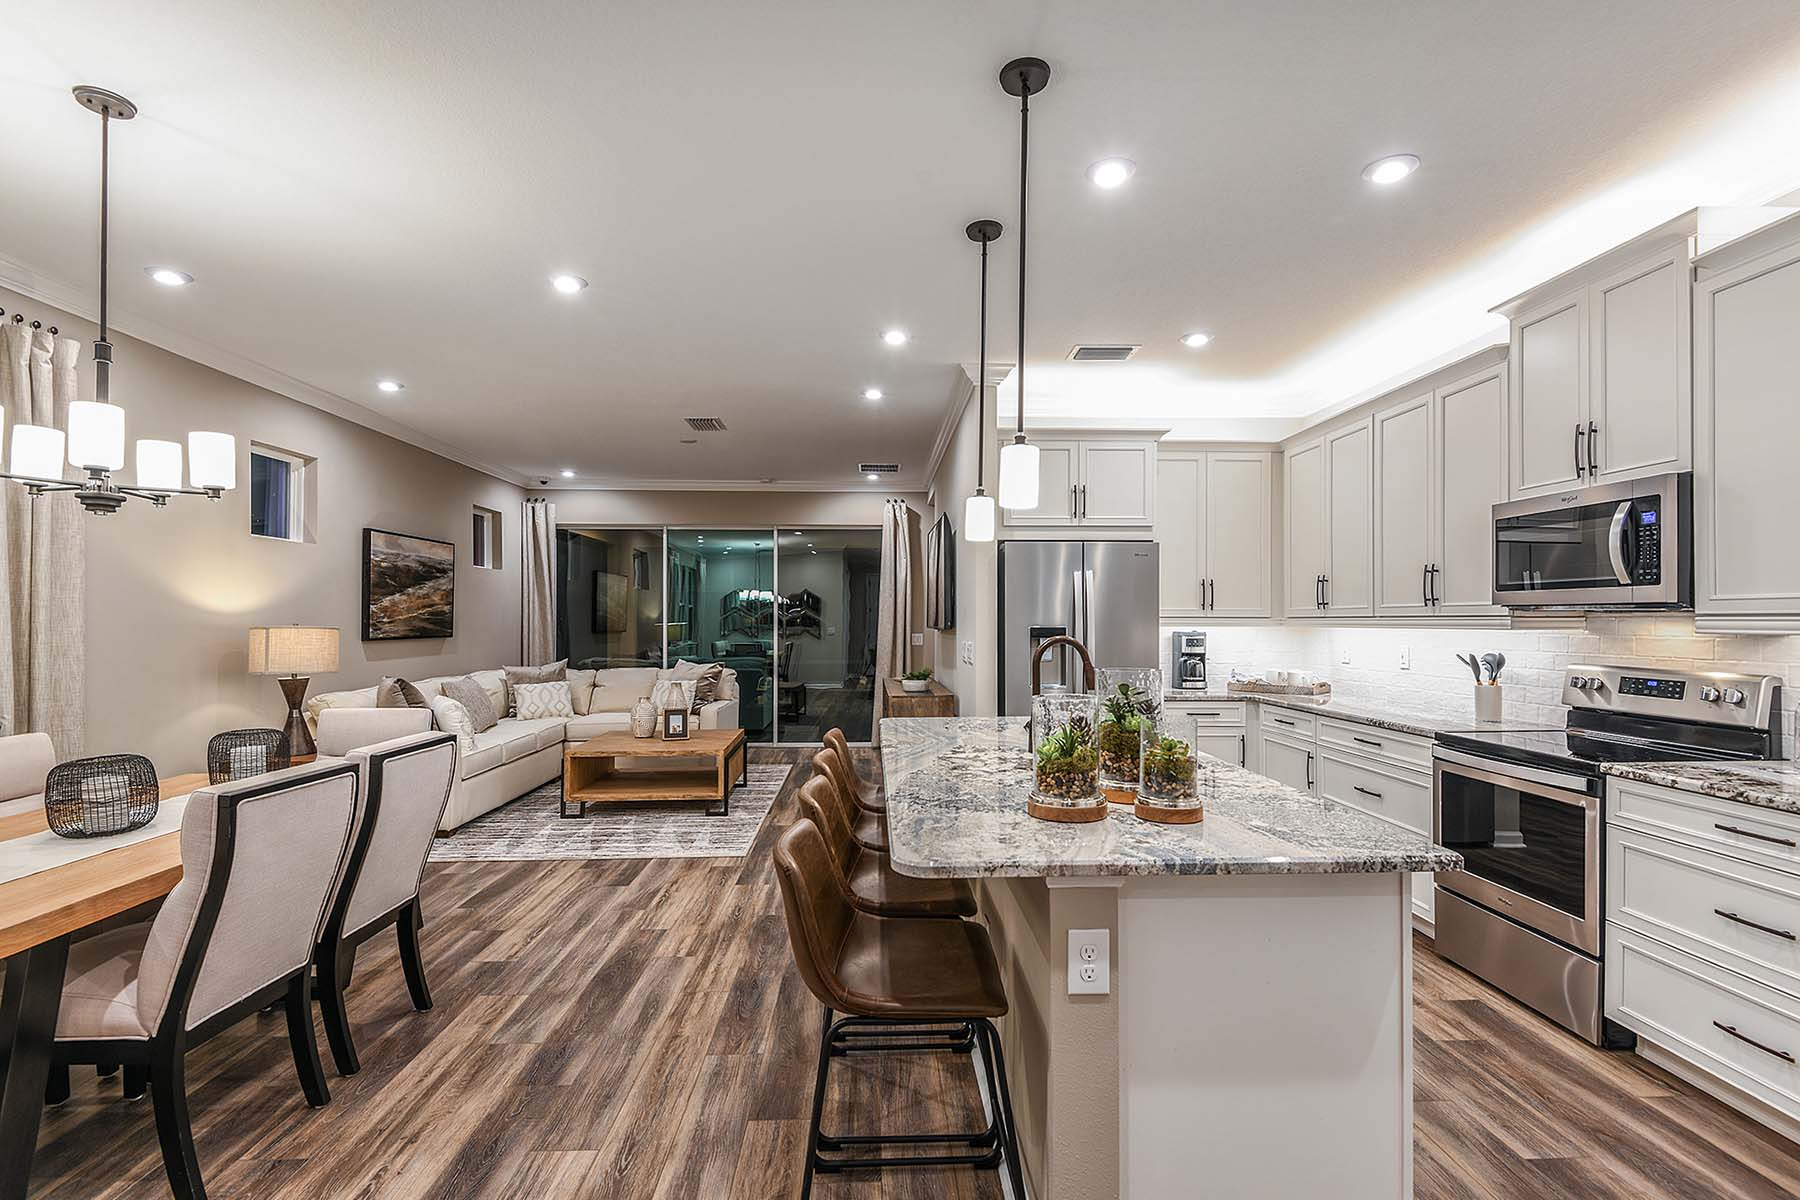 Largo Plan Kitchen at Bonavie Cove in Fort Myers Florida by Mattamy Homes